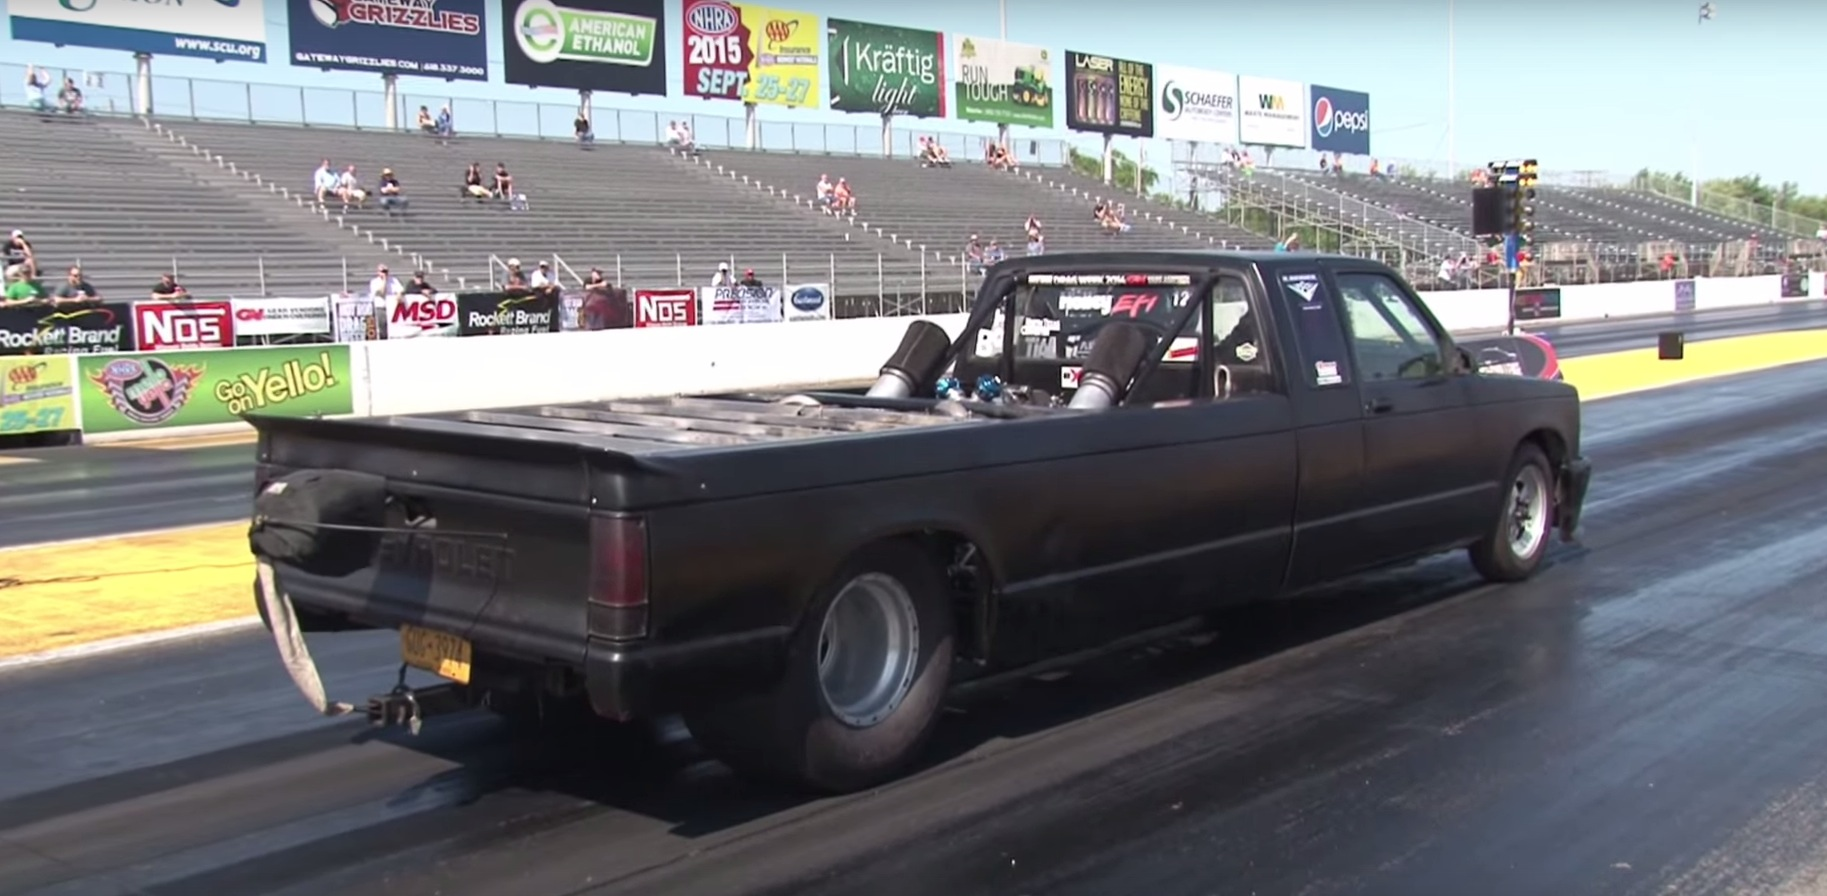 Stretched Chevy S10 Truck Has A Twin Turbo Big Block In Its Bed 9s Quarter Mile Video 100076 on drag race car parts